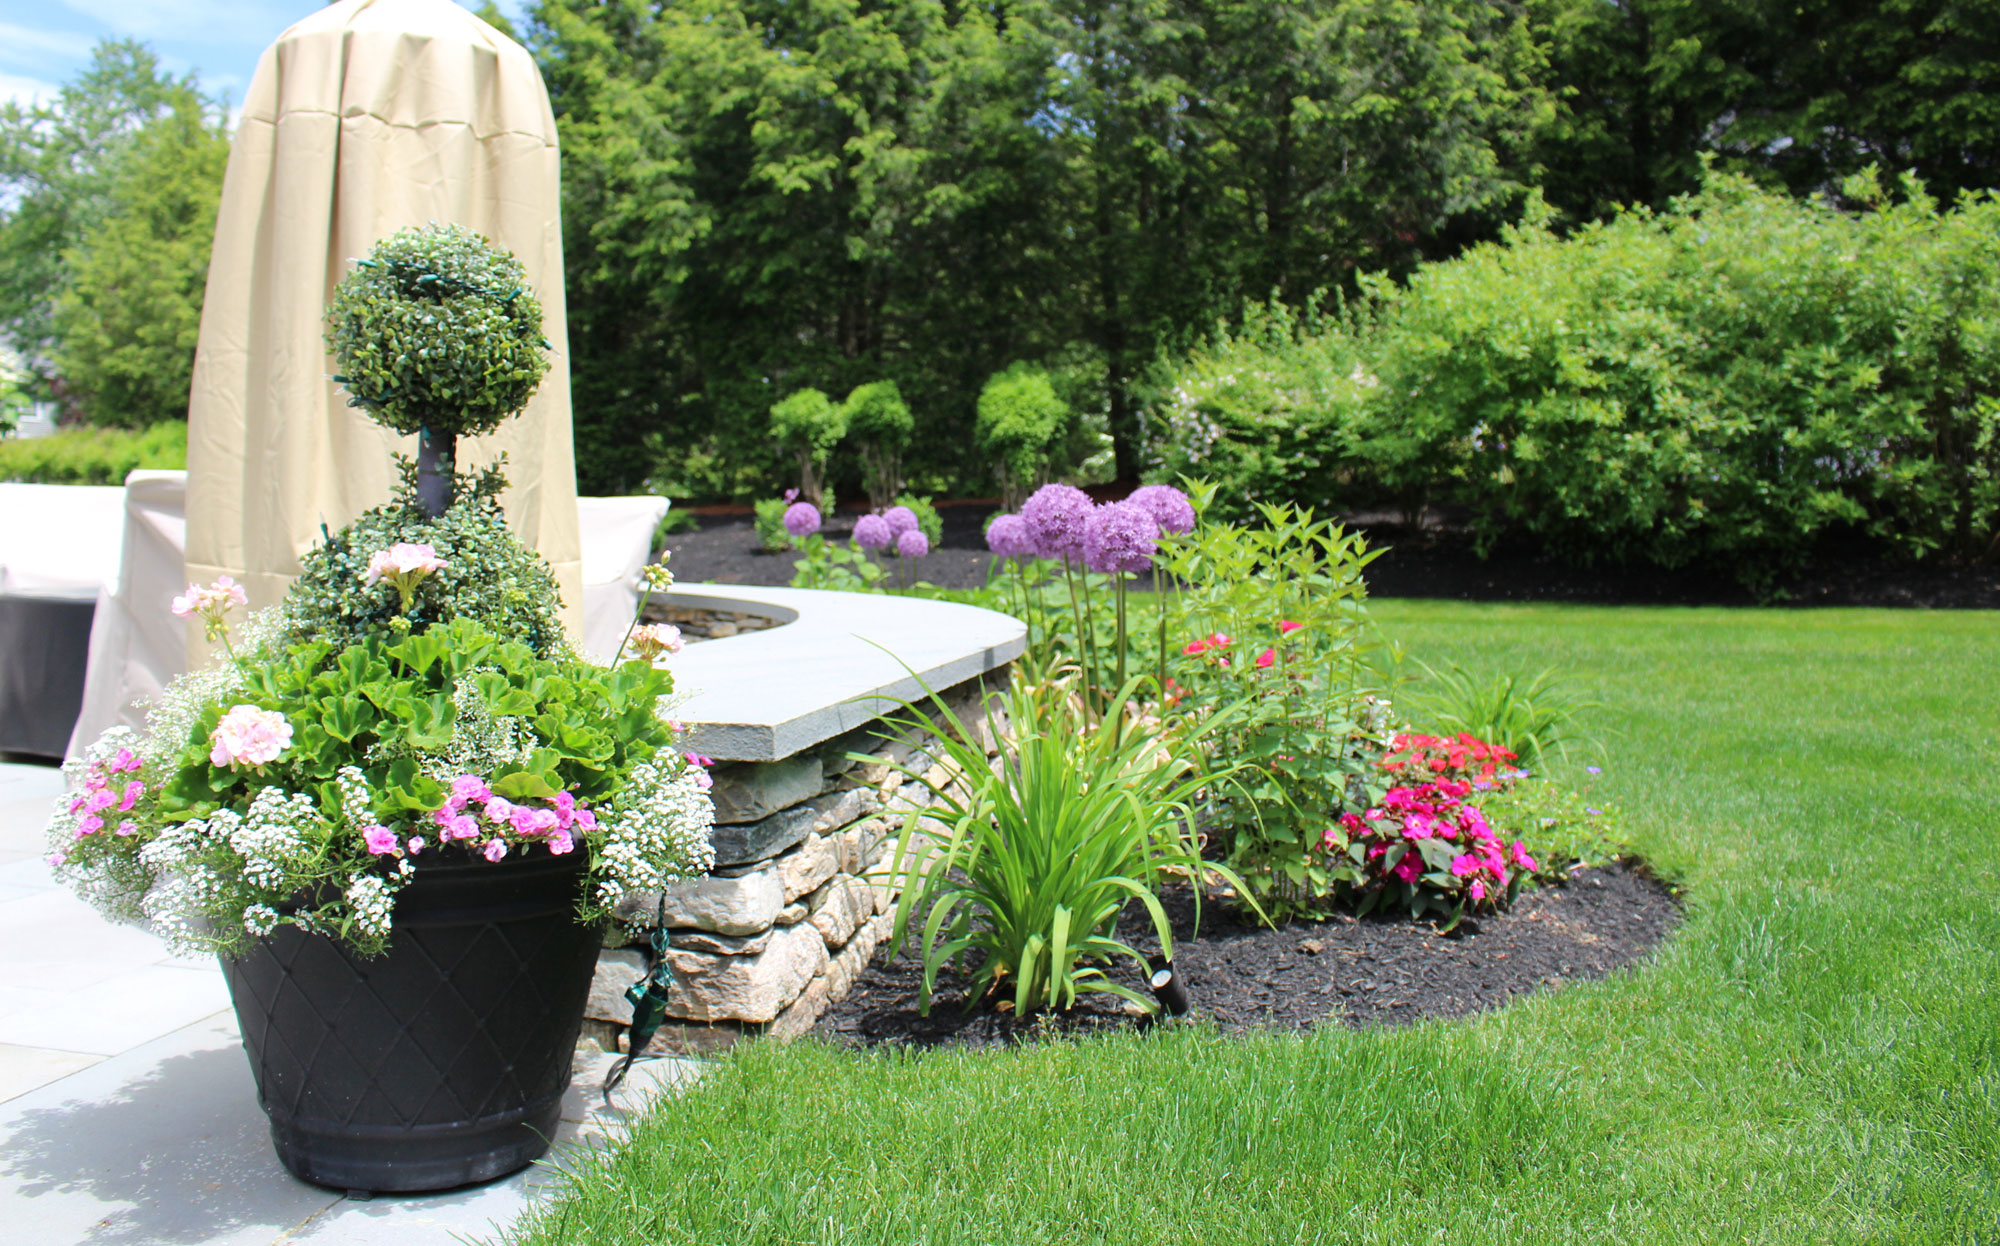 Lawn maintenance company 2 dacosta landscaping for Landscaping services